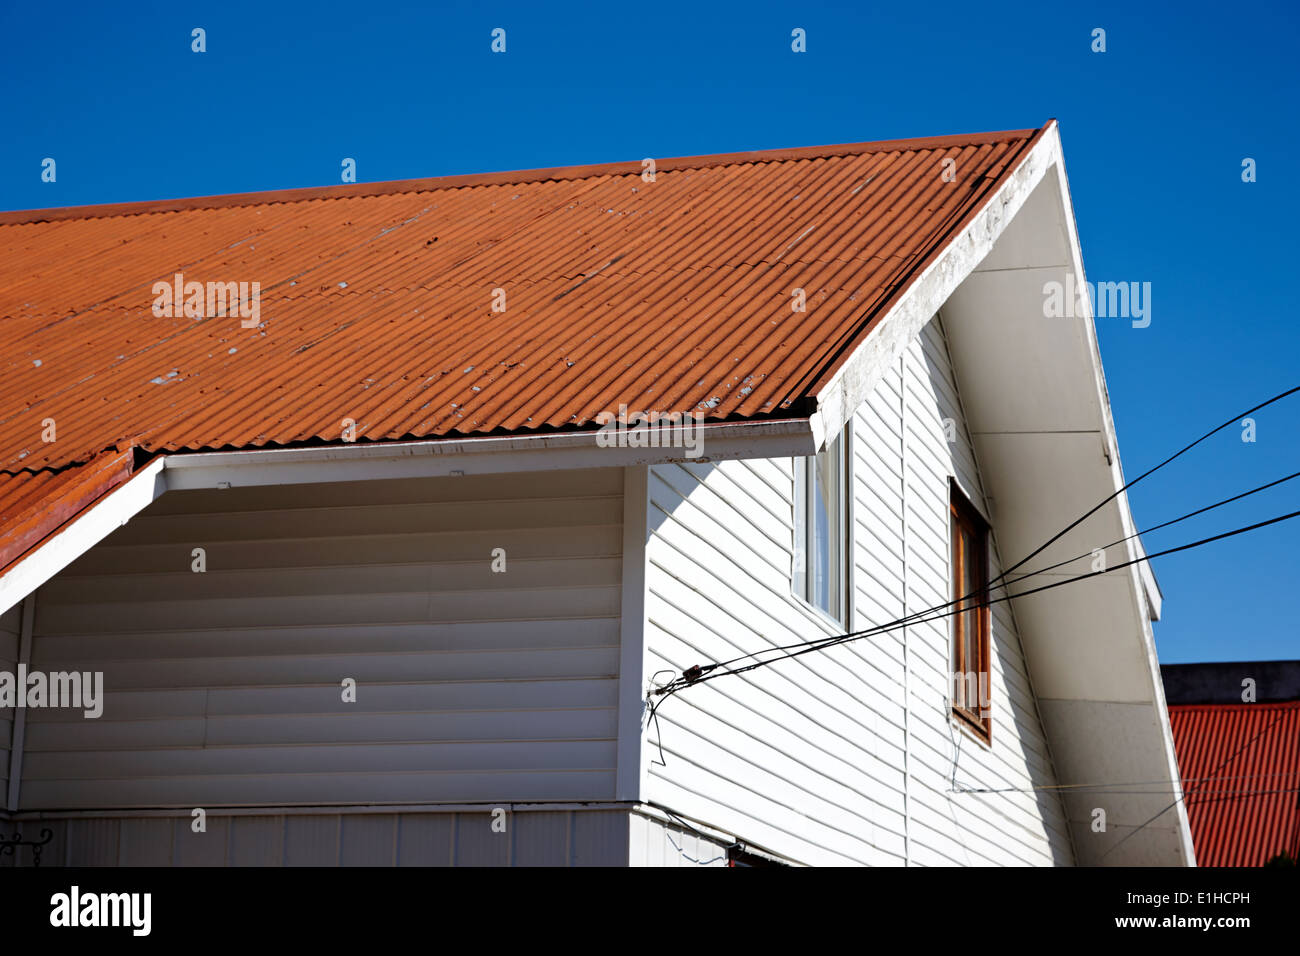 Houses With Tin Roof High Resolution Stock Photography And Images Alamy